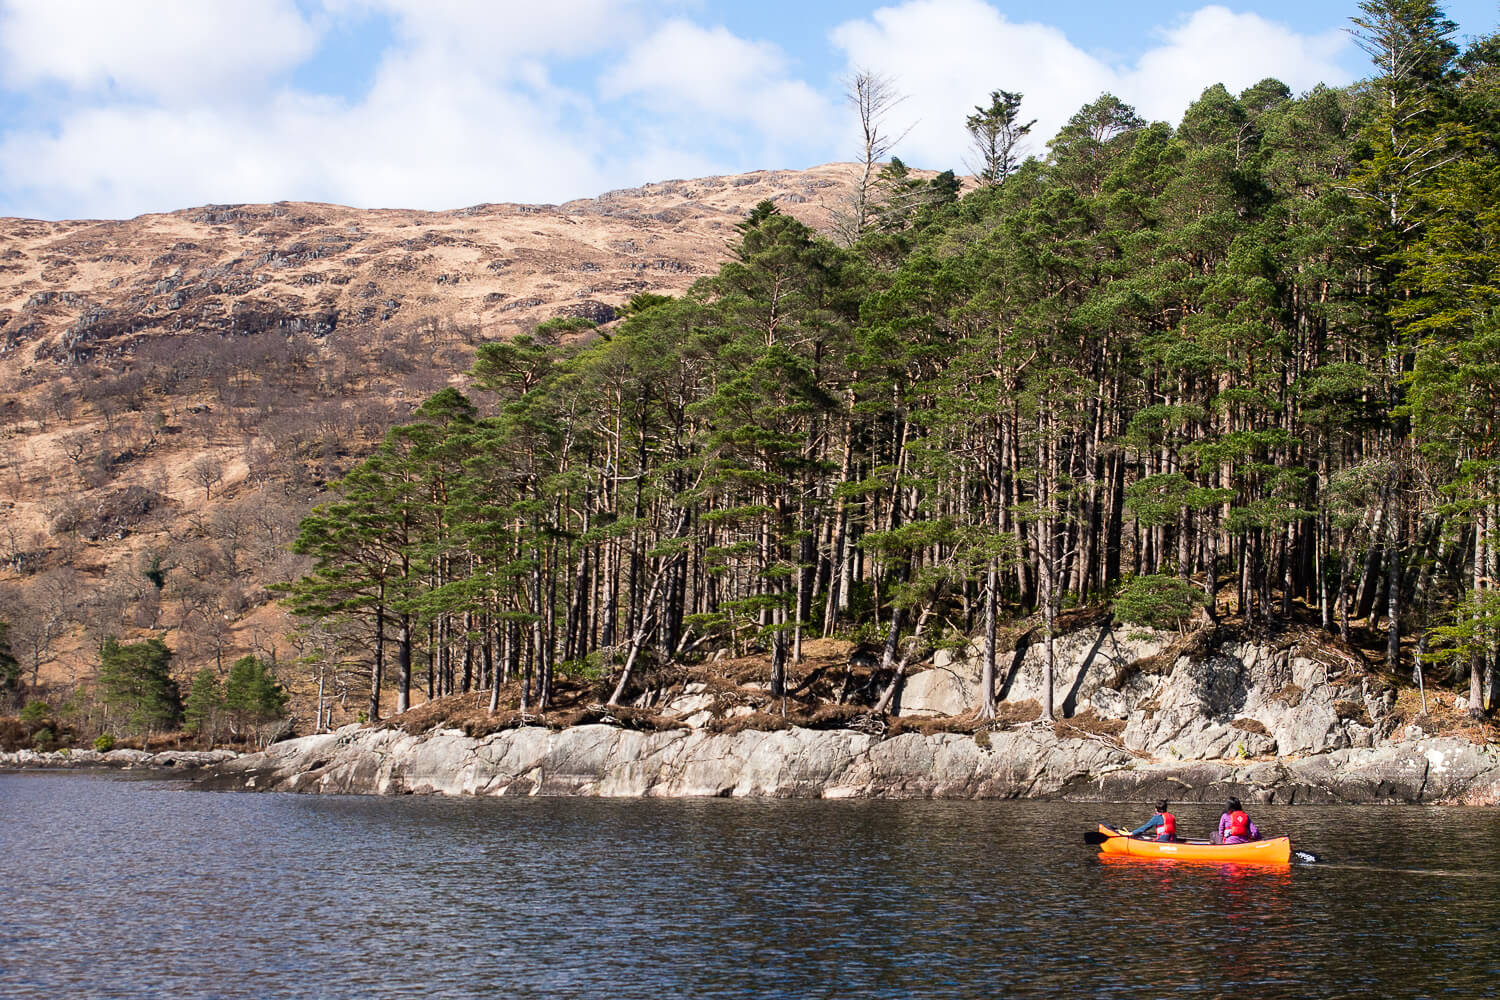 Canoe on Loch Shiel among rocky shoreline and ancient woodland